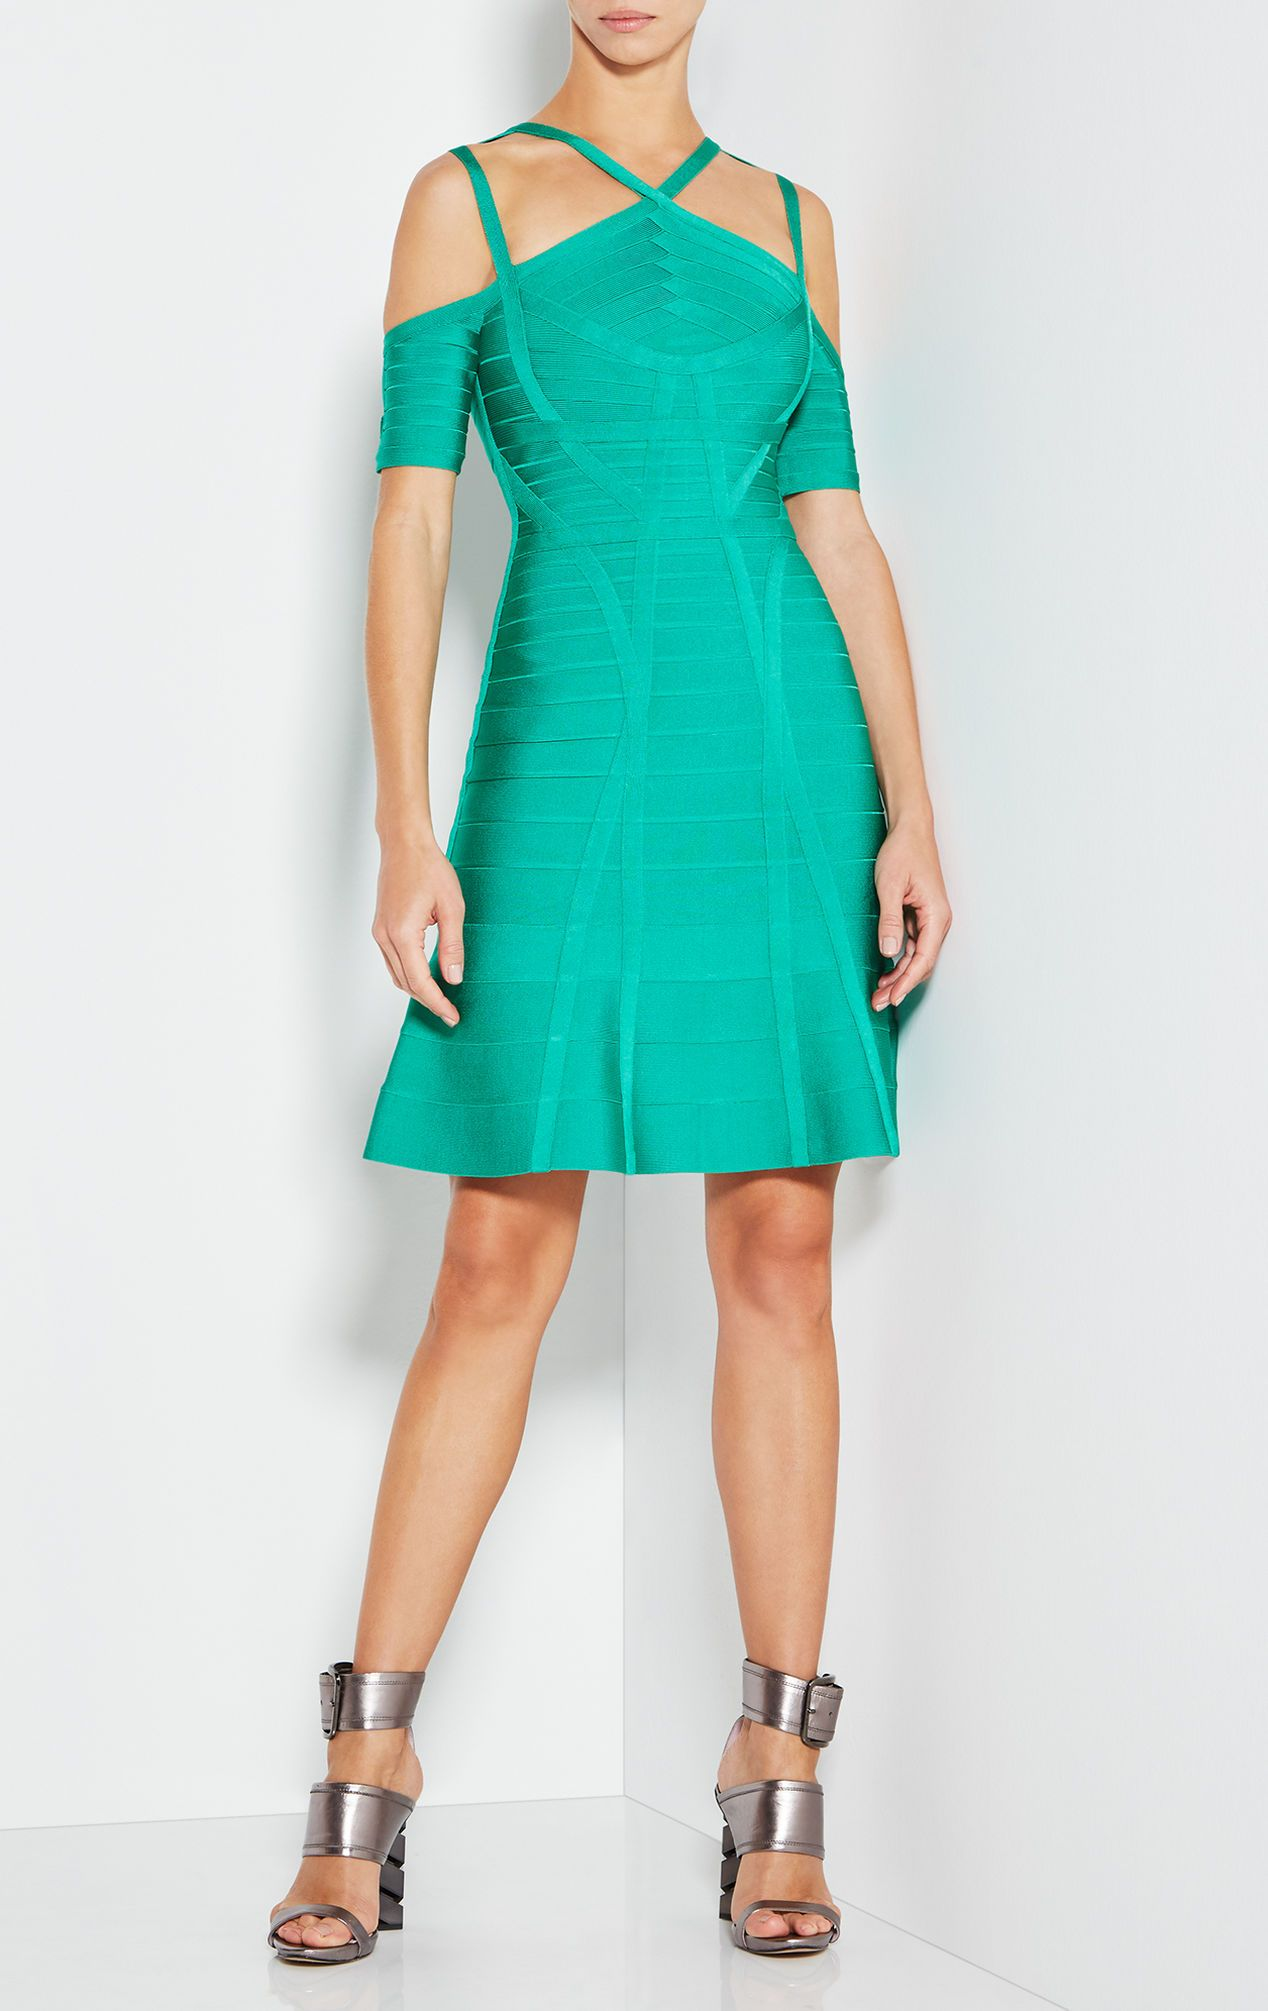 Chantelle Cutout Bandage Dress | I can rock this | Pinterest | Herve ...